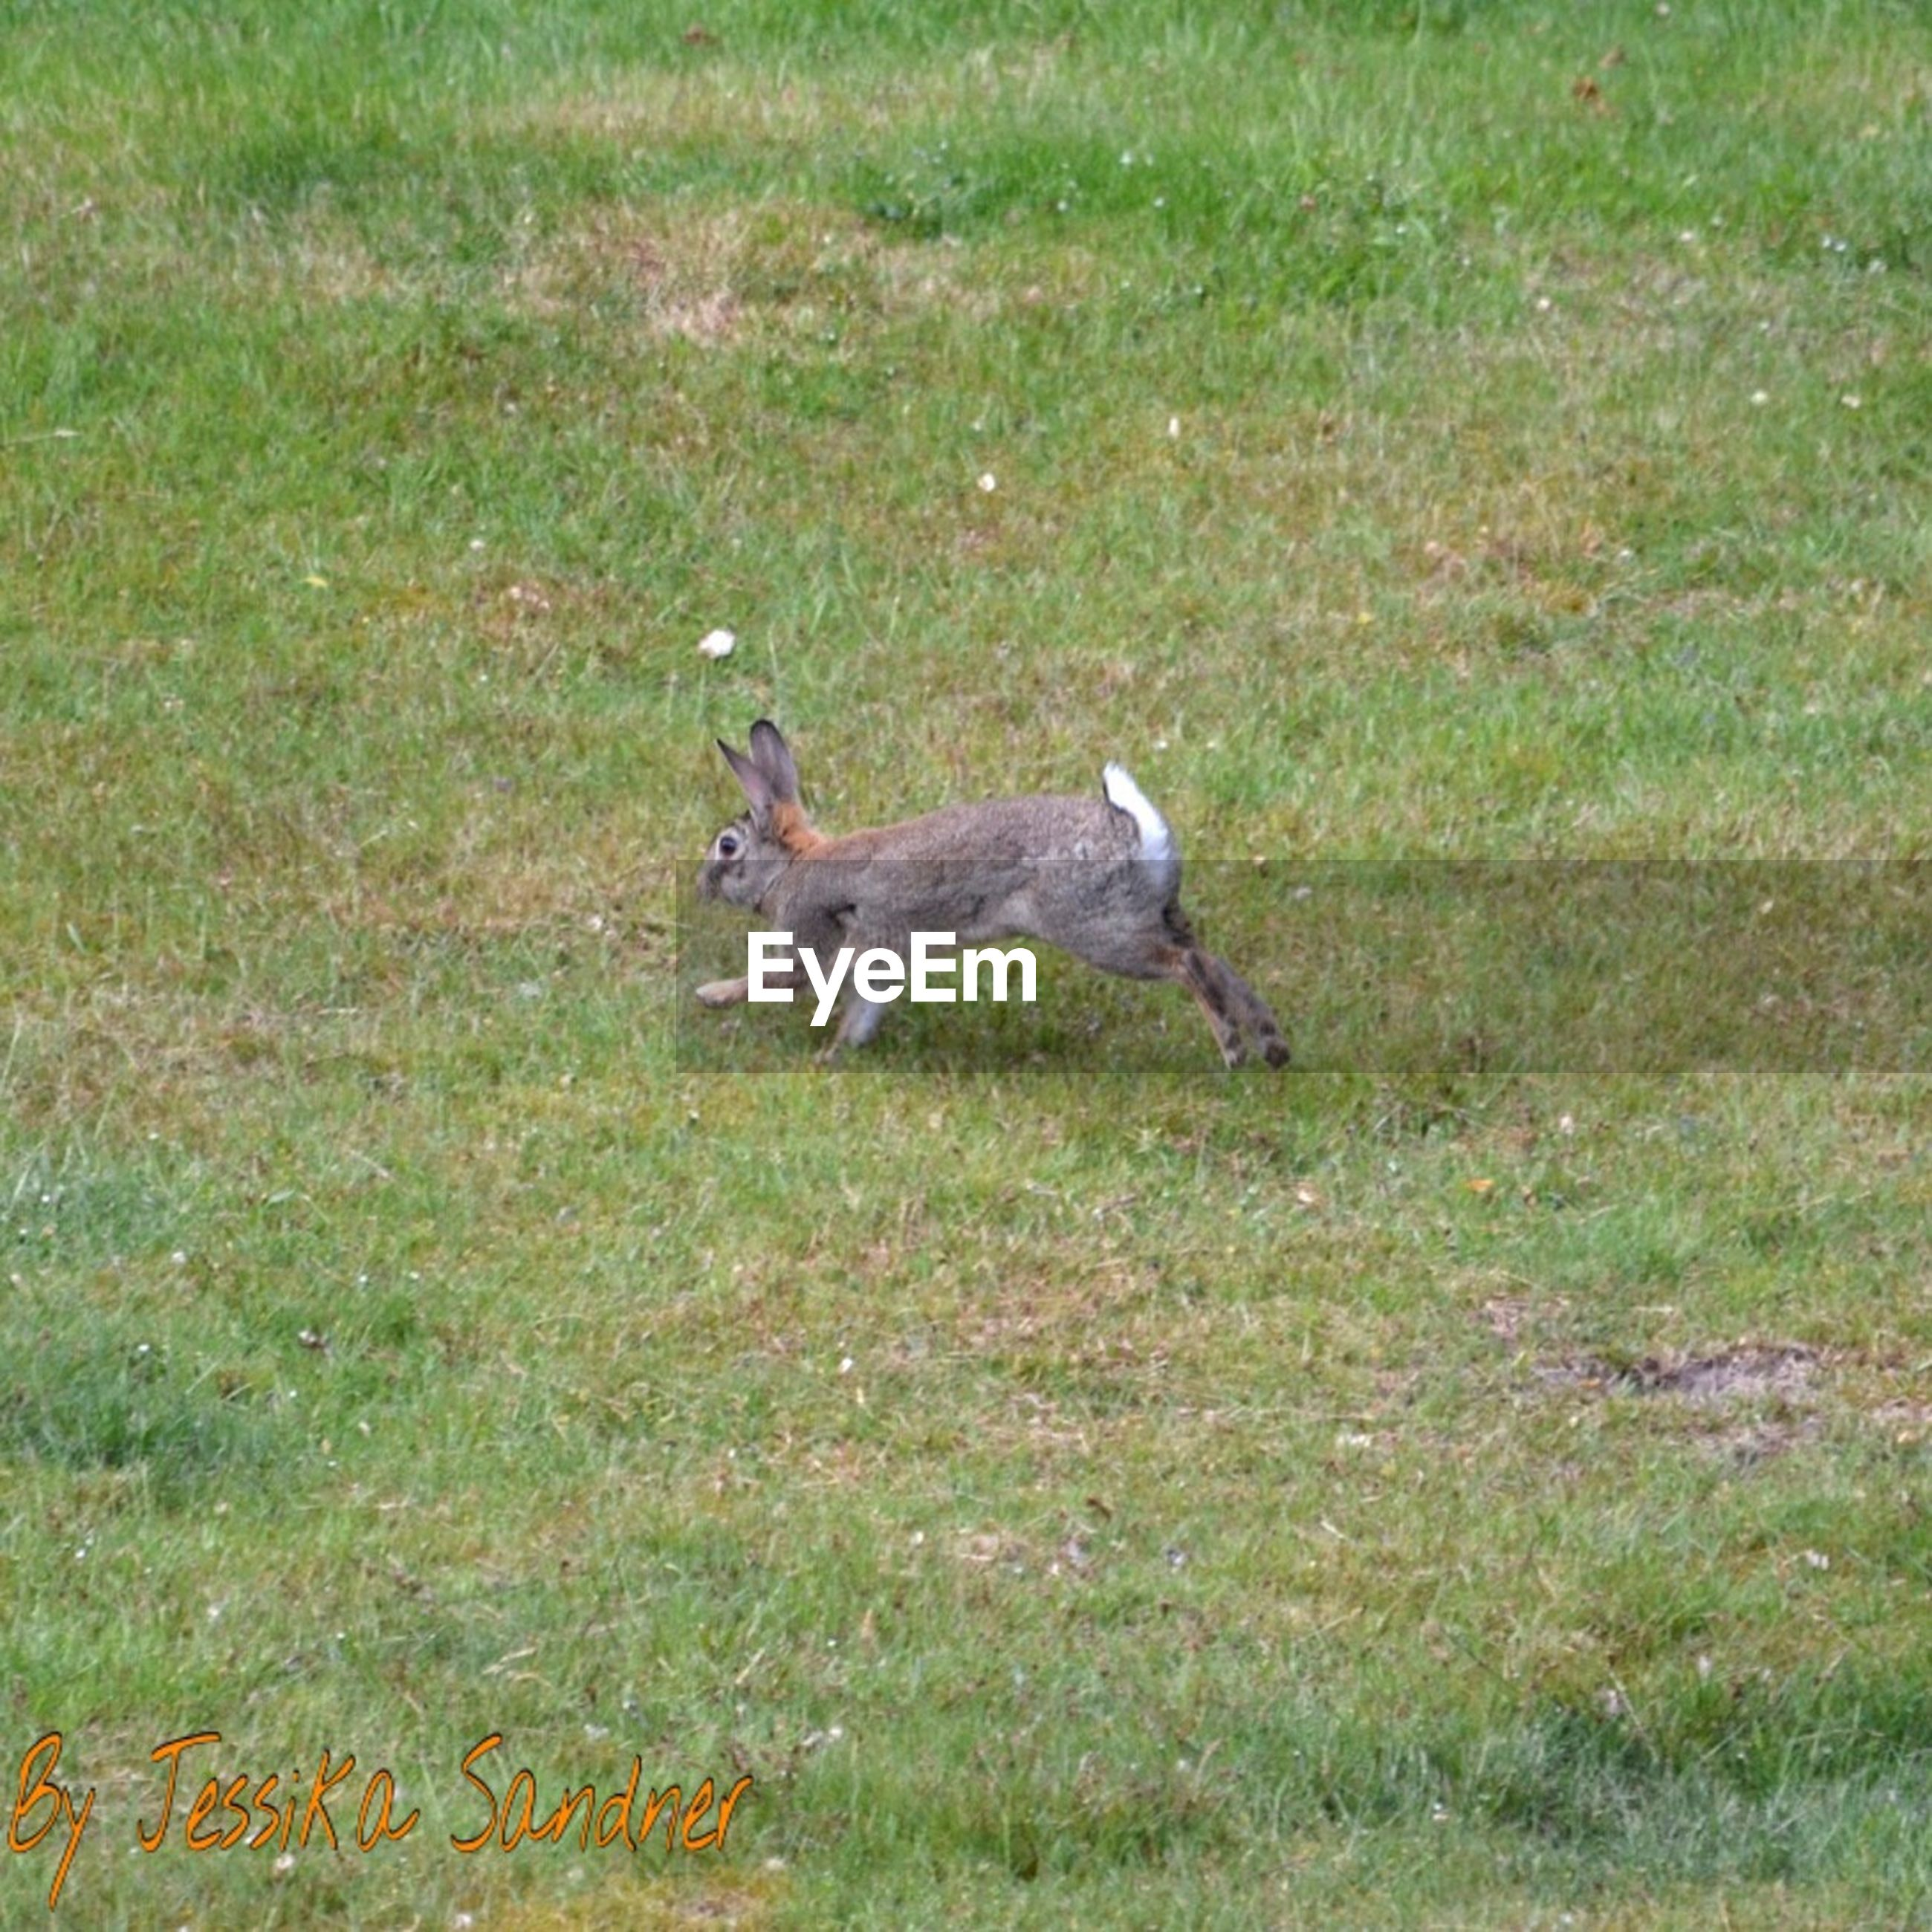 animal themes, grass, animals in the wild, field, one animal, bird, grassy, wildlife, full length, green color, side view, nature, outdoors, day, two animals, no people, growth, high angle view, sunlight, plant